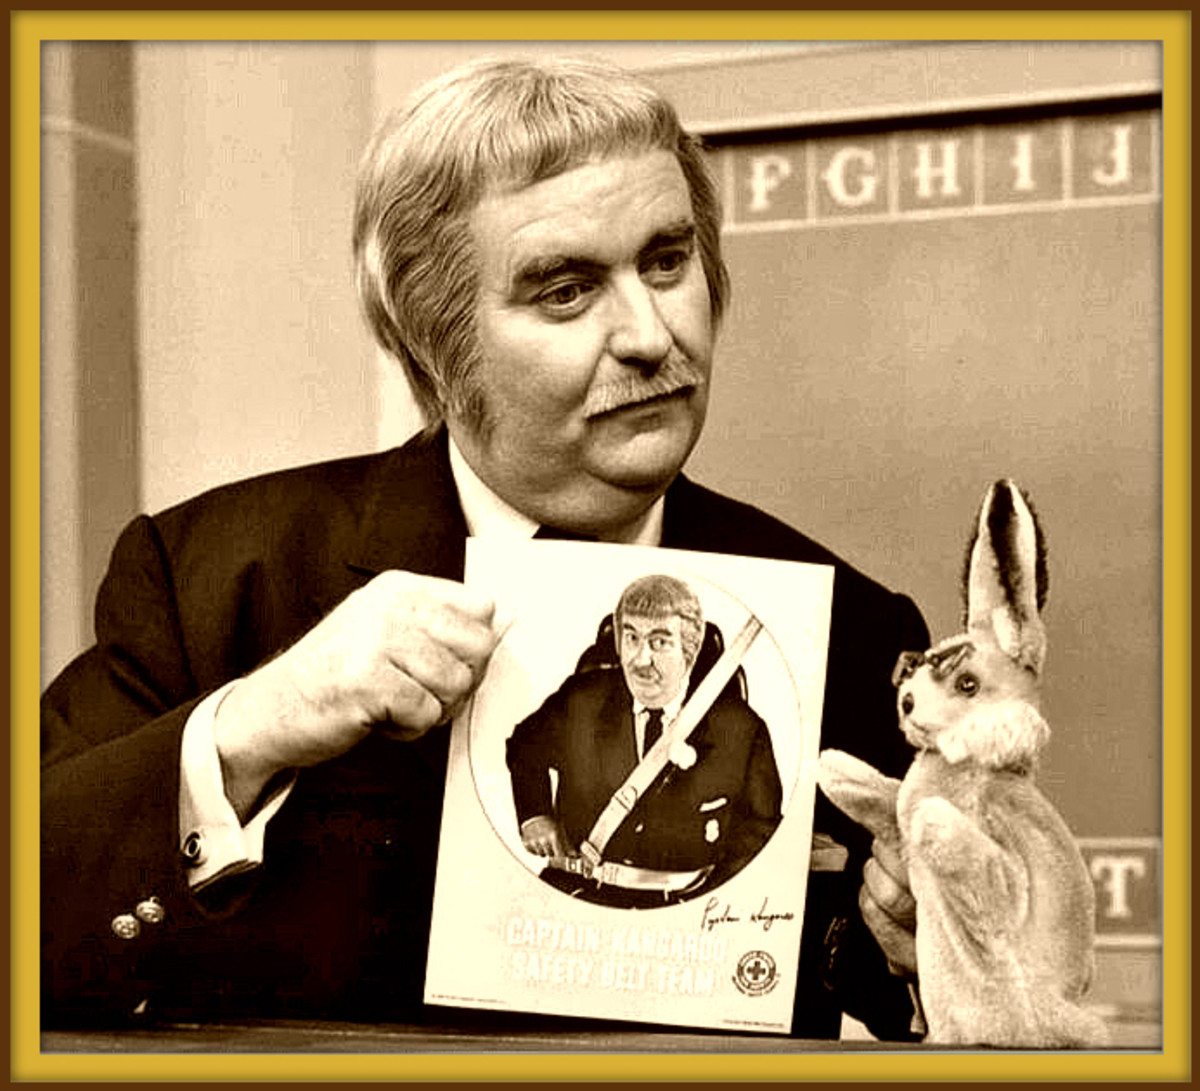 Captain Kangaroo with Bunny Rabbit. Bunny was made by Character Novelty Company. This was an AD that was  part of a seat belt campaign. Bob Keeshan played Captain Kangaroo for many many years on TV.